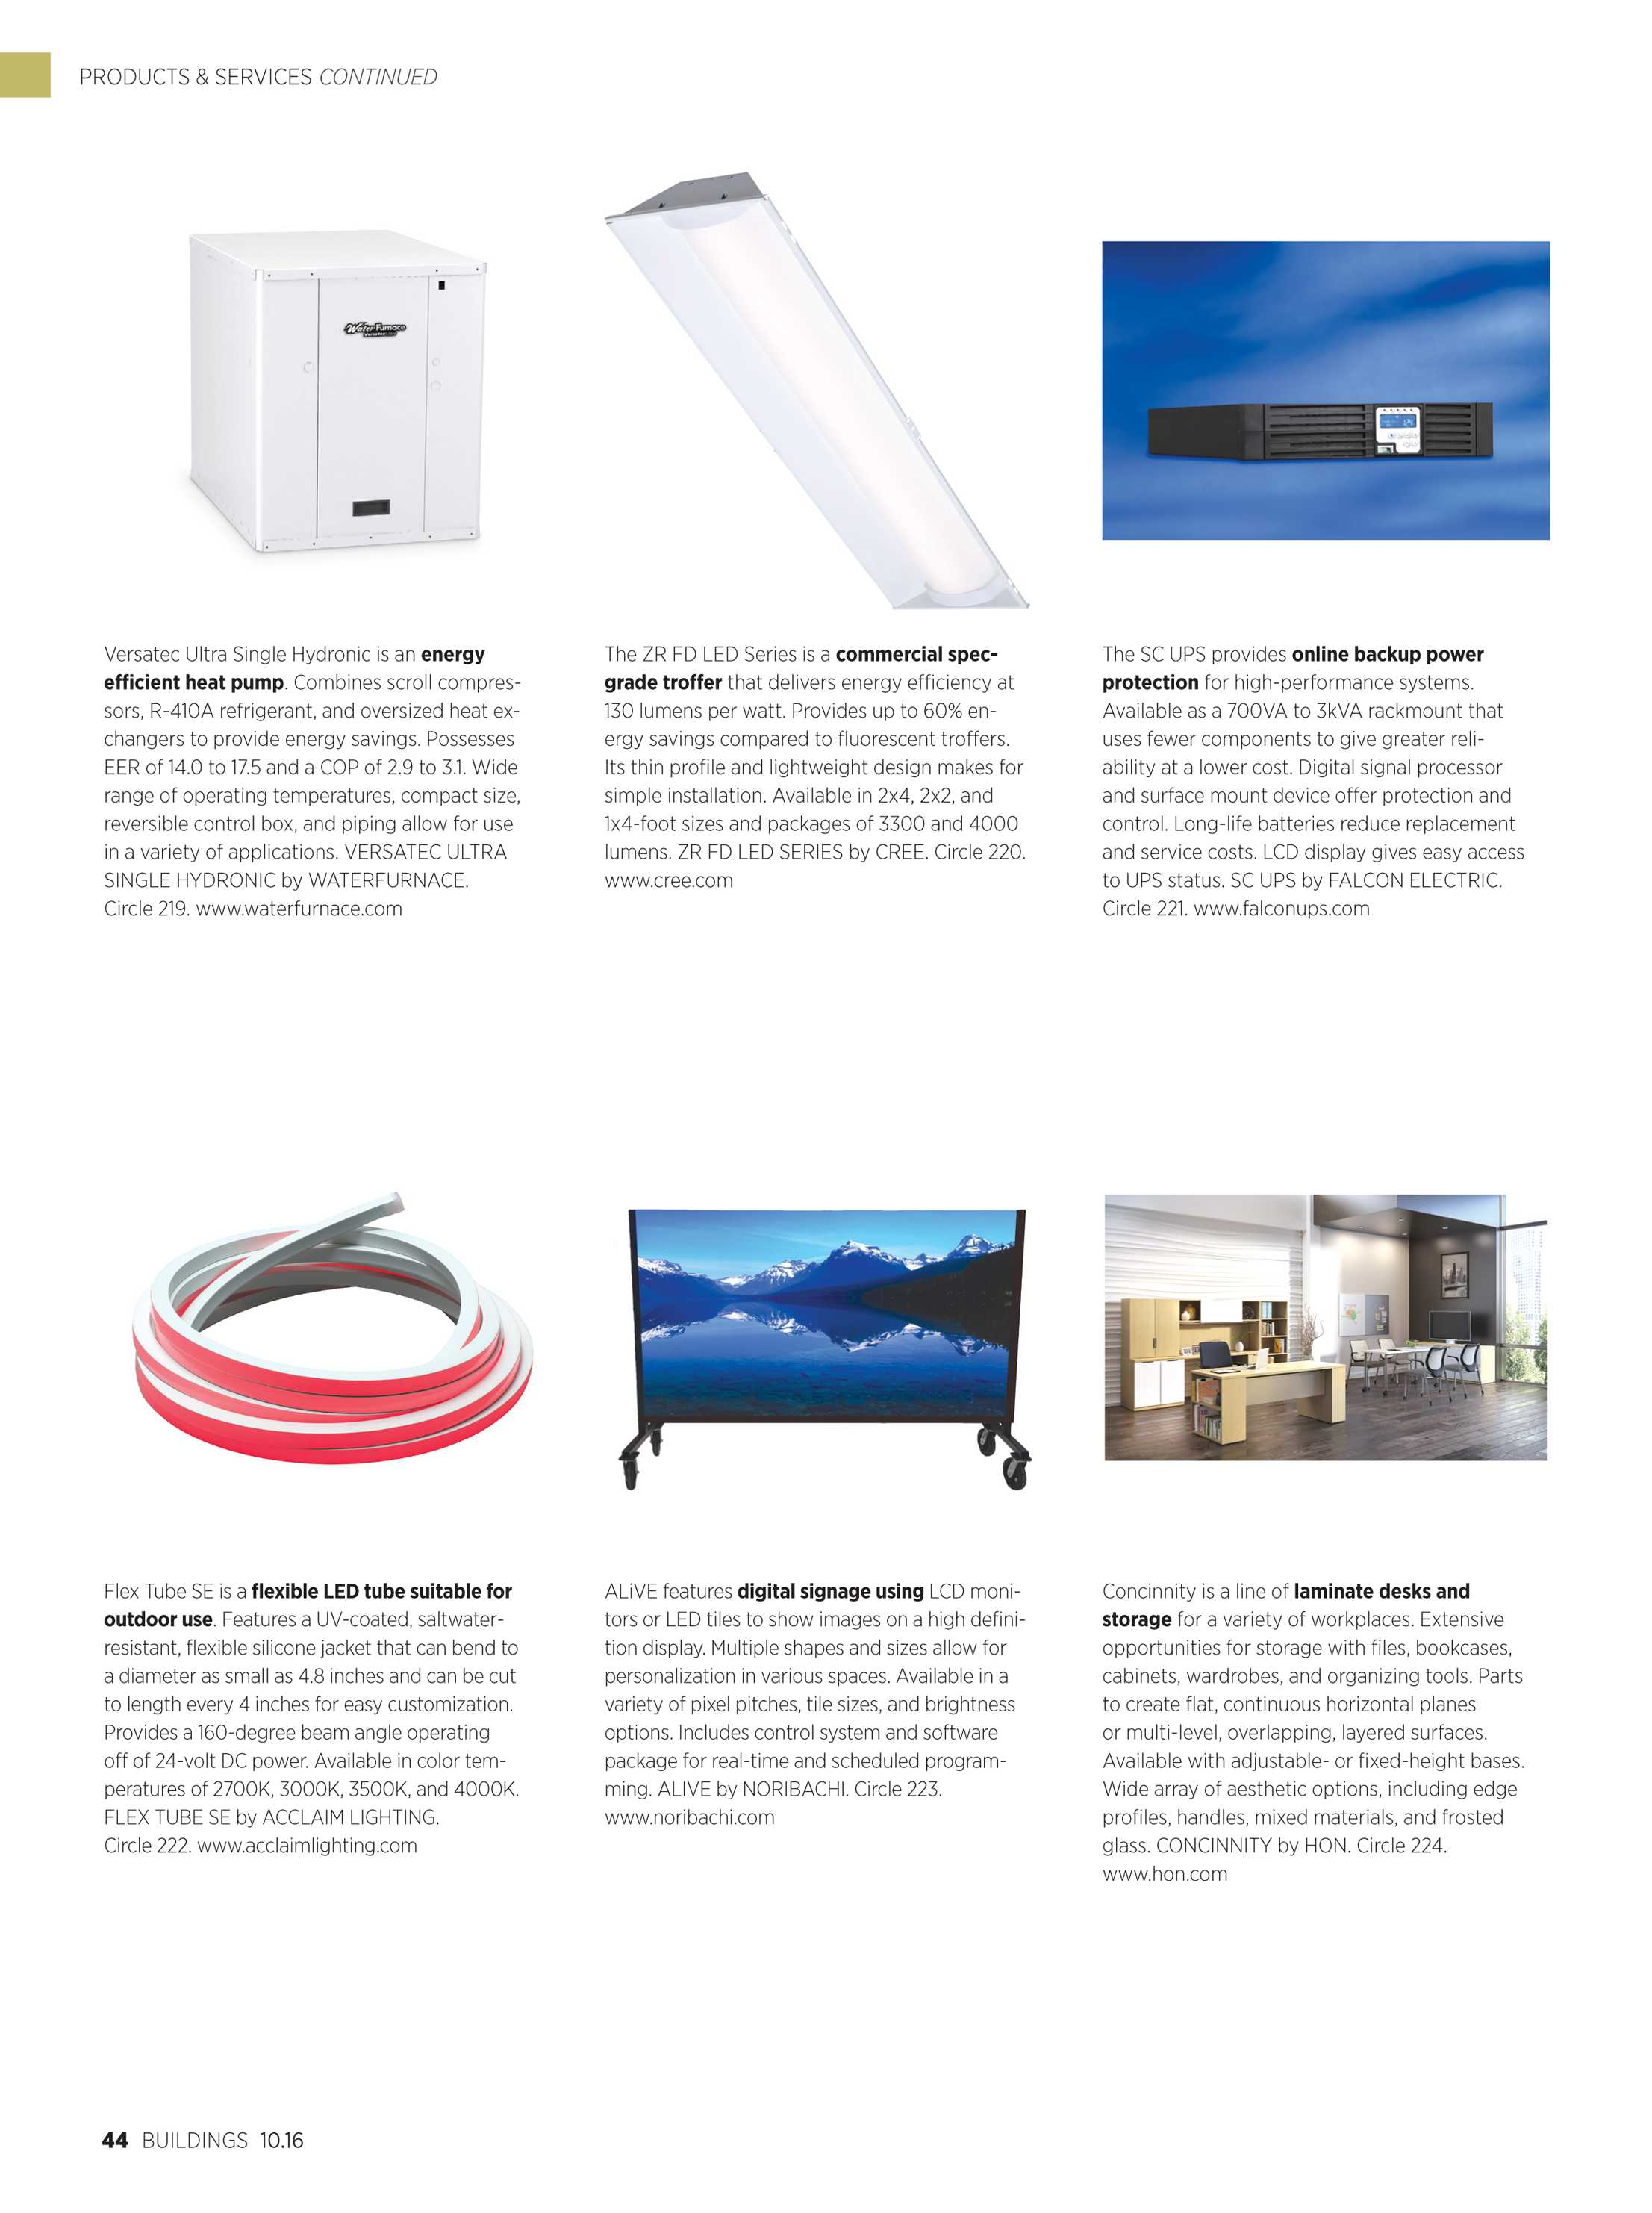 Buildings Magazine - October 2016 - page 44